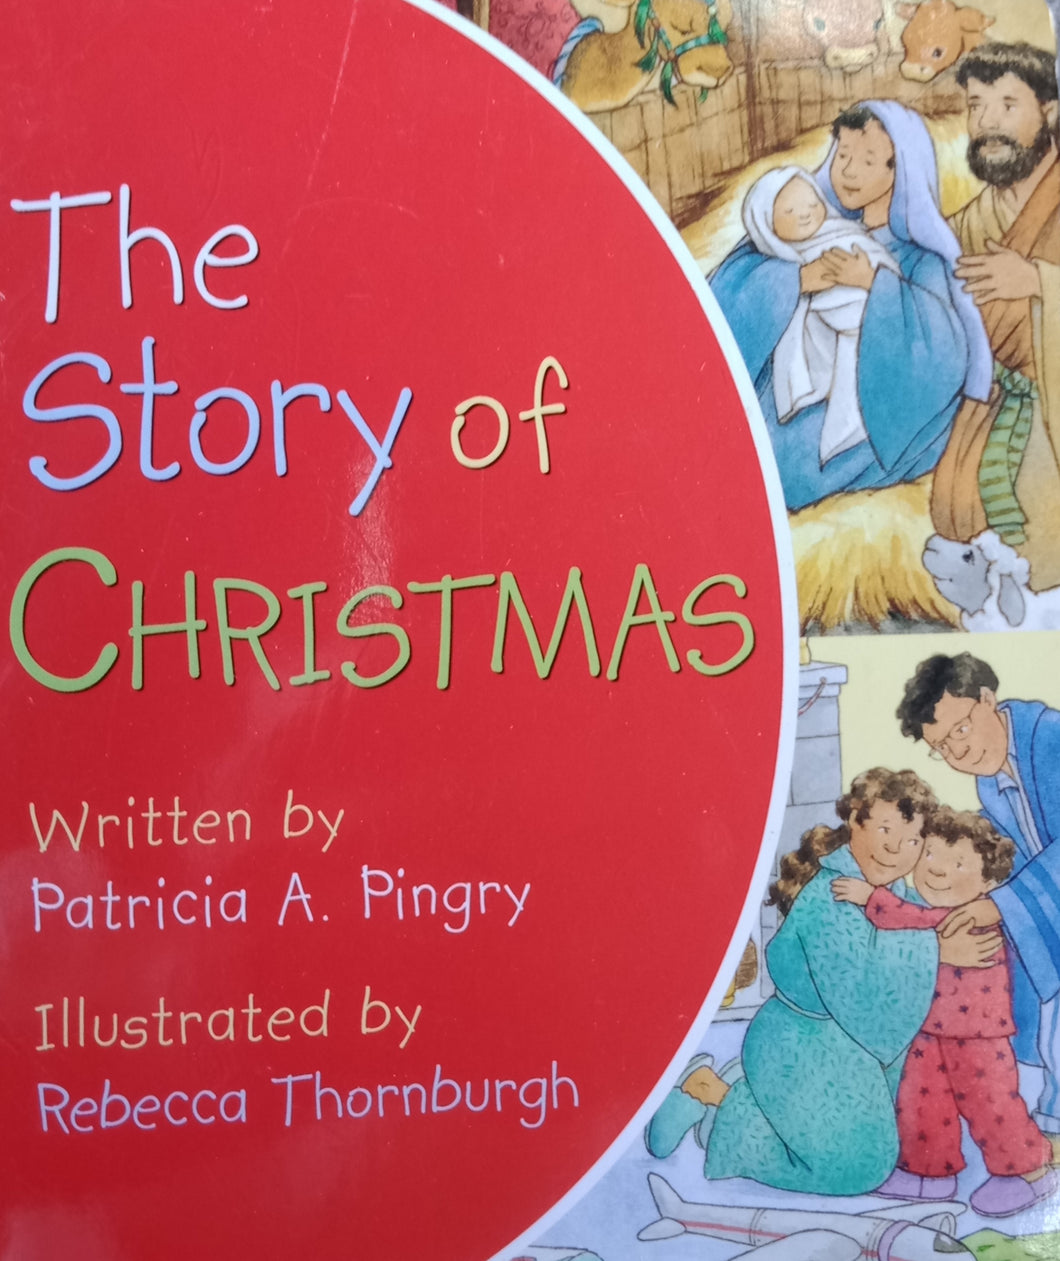 The Story Of Christmas by Patricia Pingry